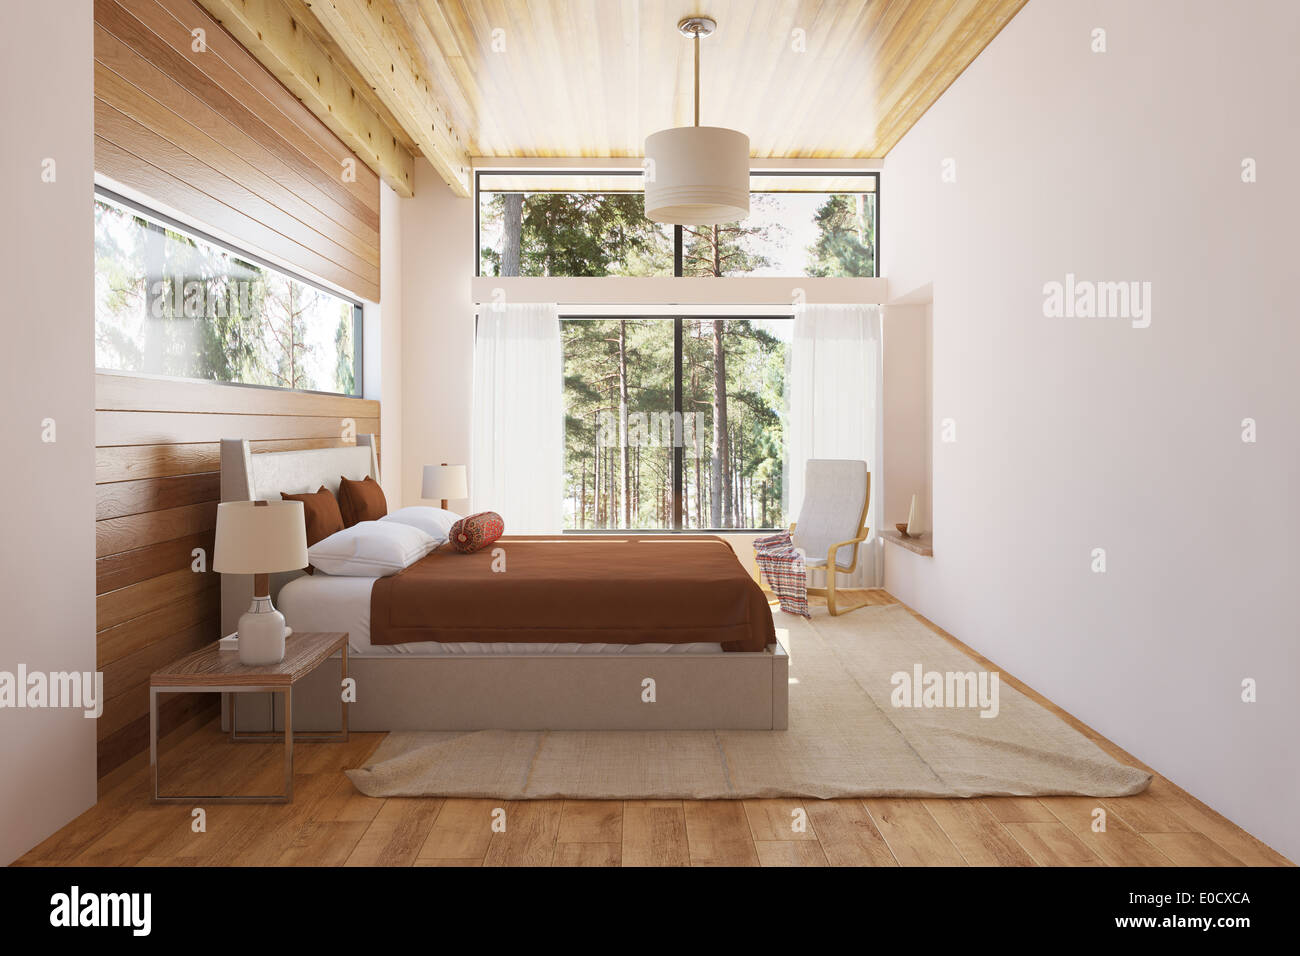 Bedroom Interior With Bed Wooden Front Walls And Big Window With Stock Photo Alamy